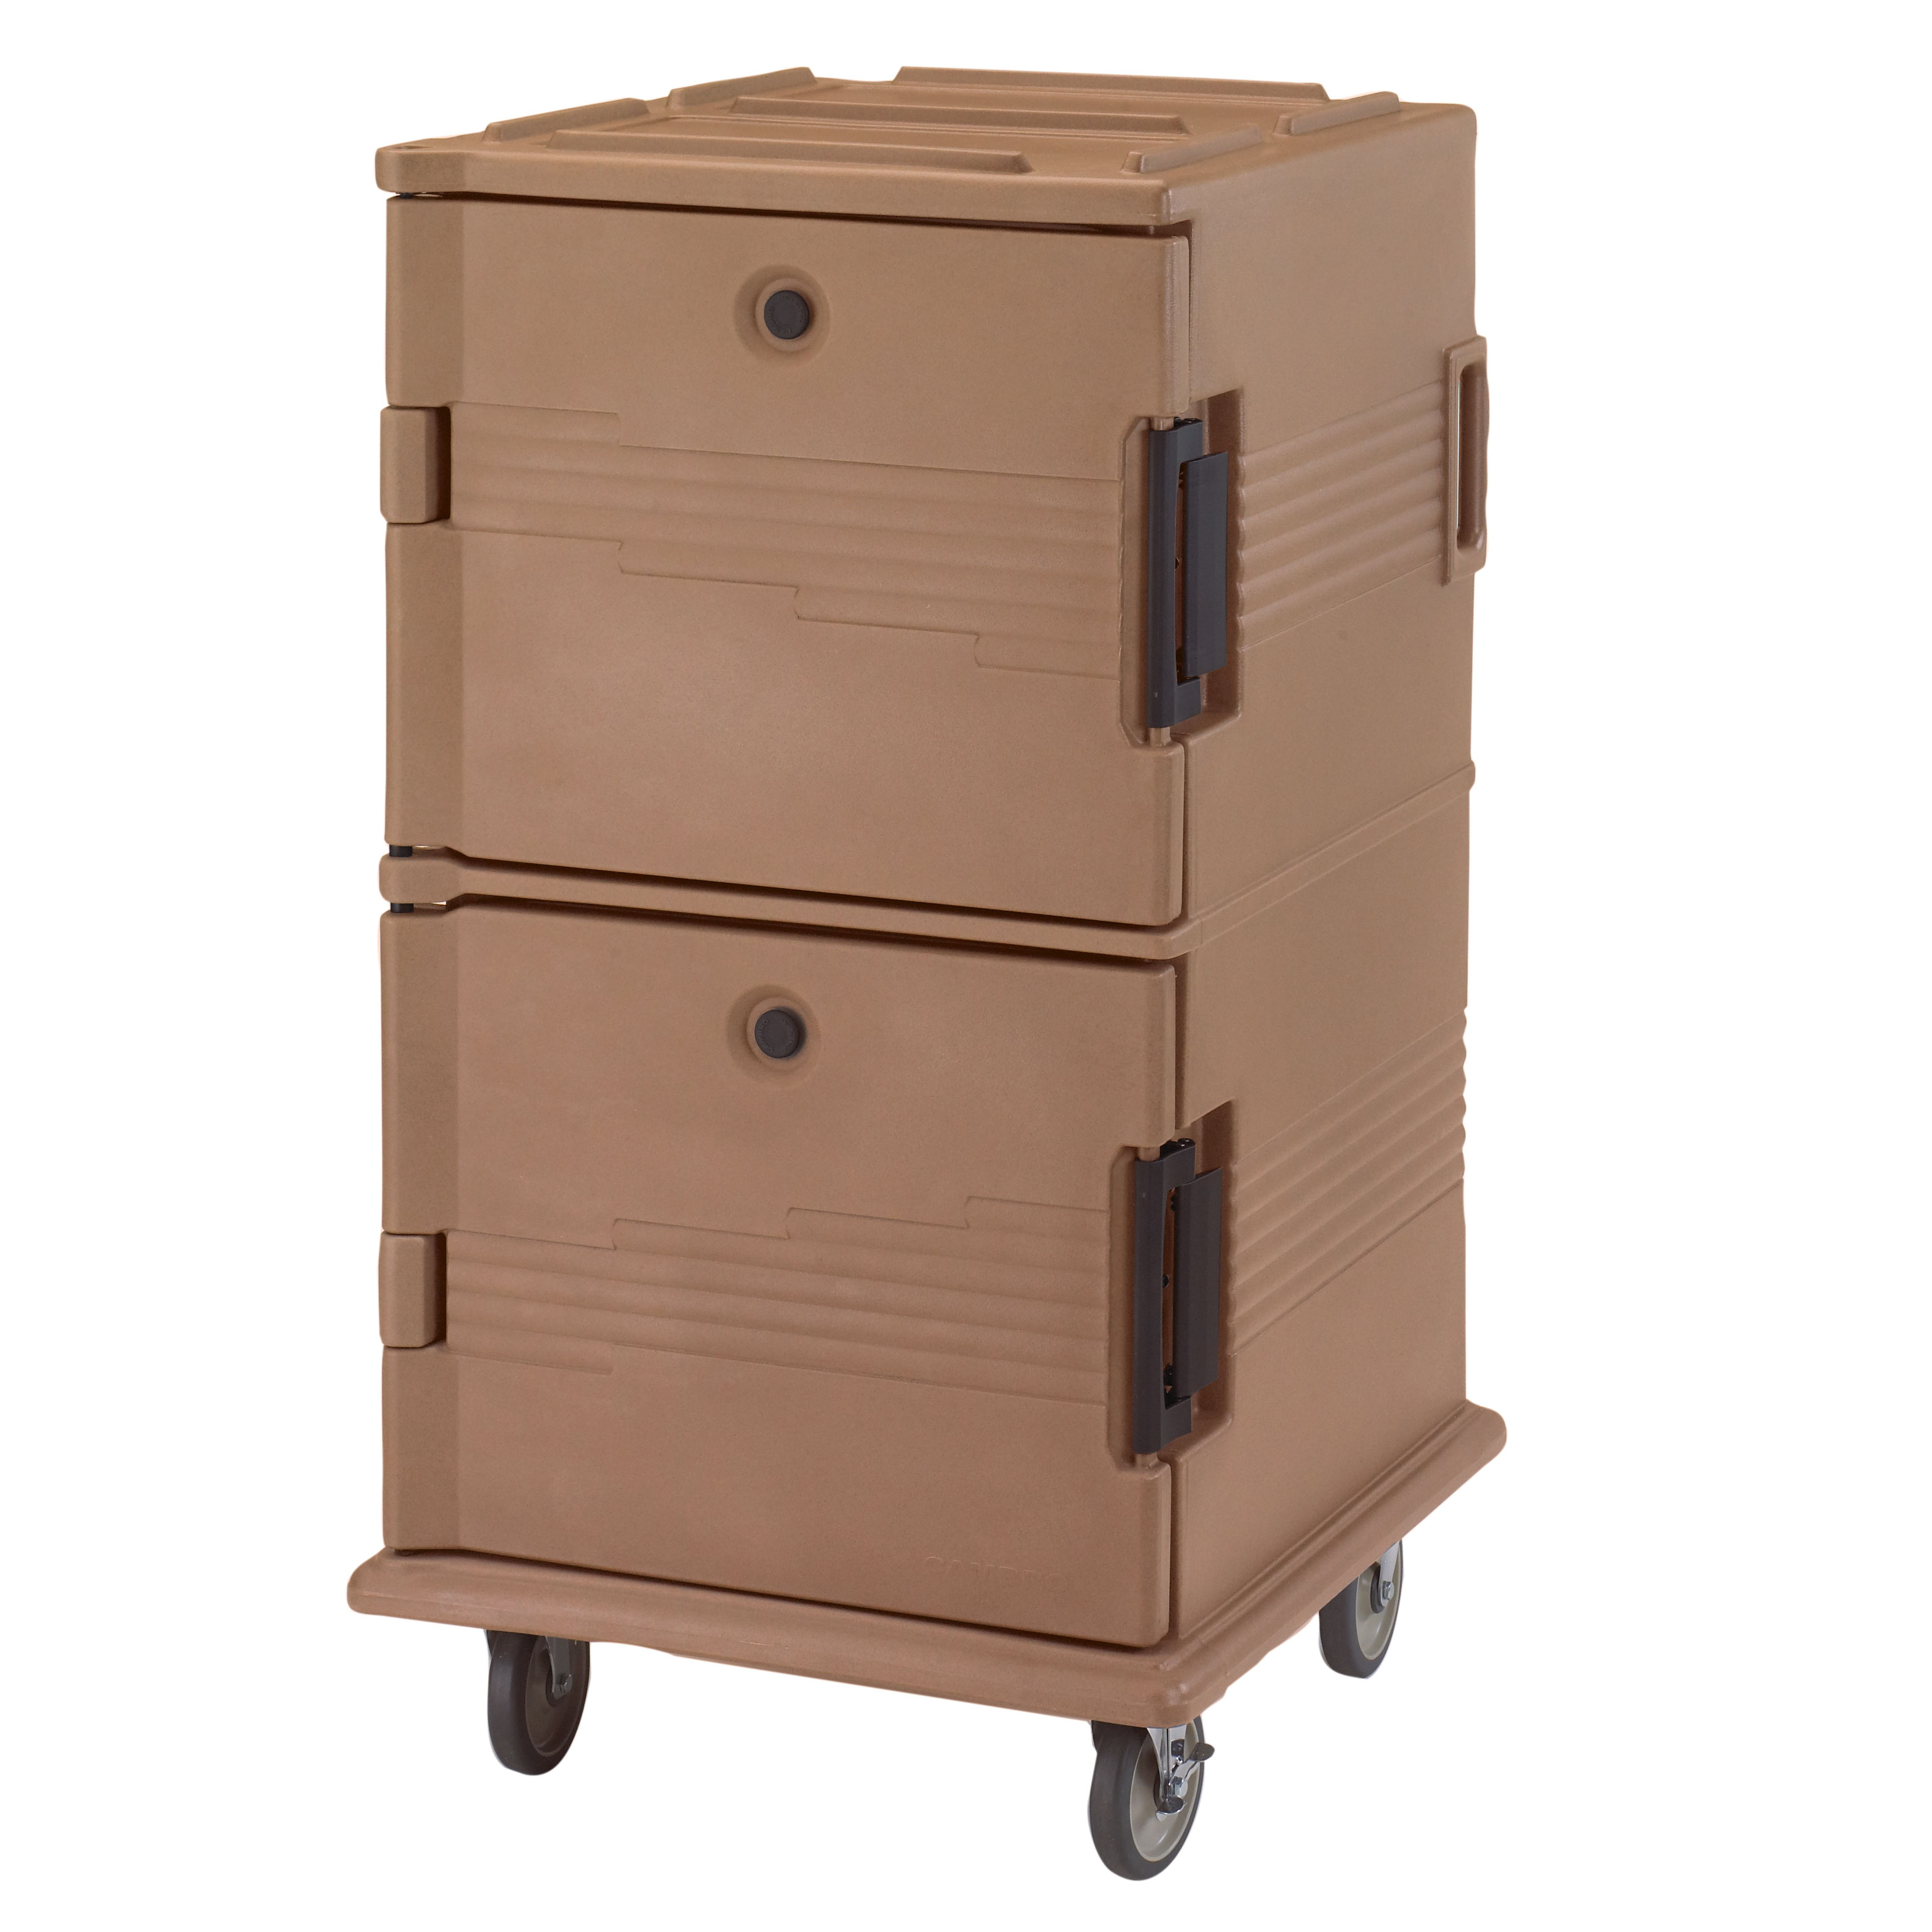 Cambro UPC1600SP157 proofing/holding cabinets